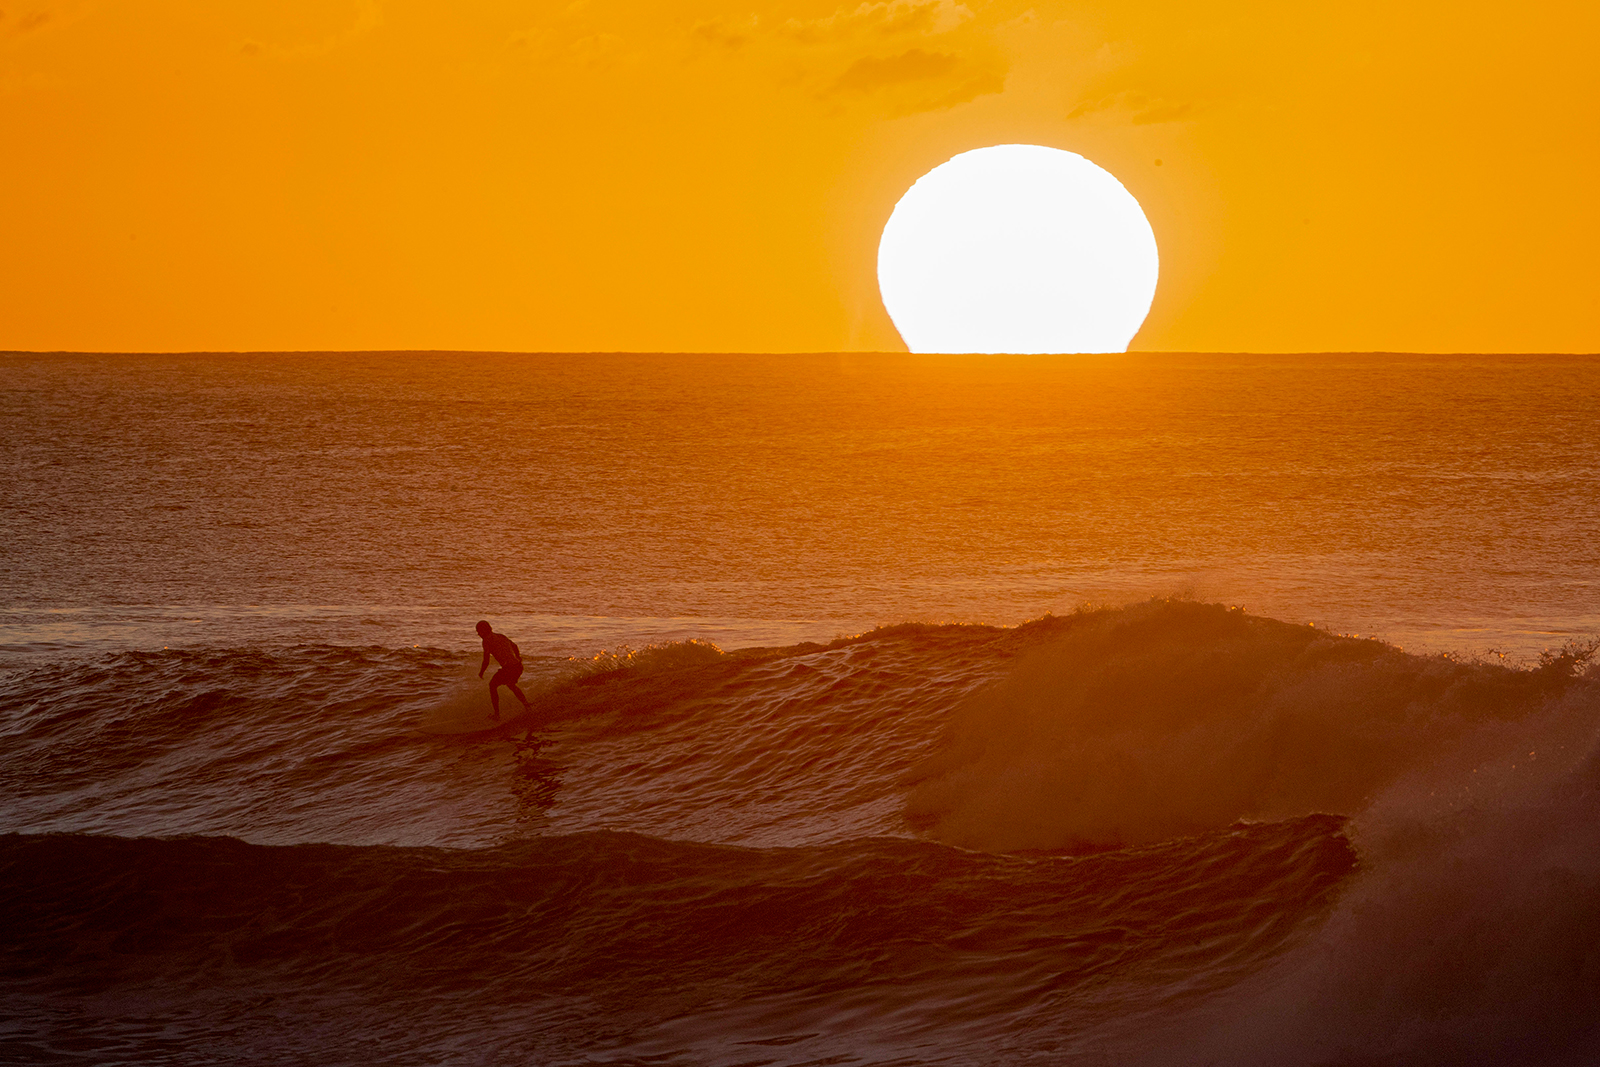 A surfer rides a wave as the sun sets on the horizon on the north shore of Oahu in Hawaii on January 28.